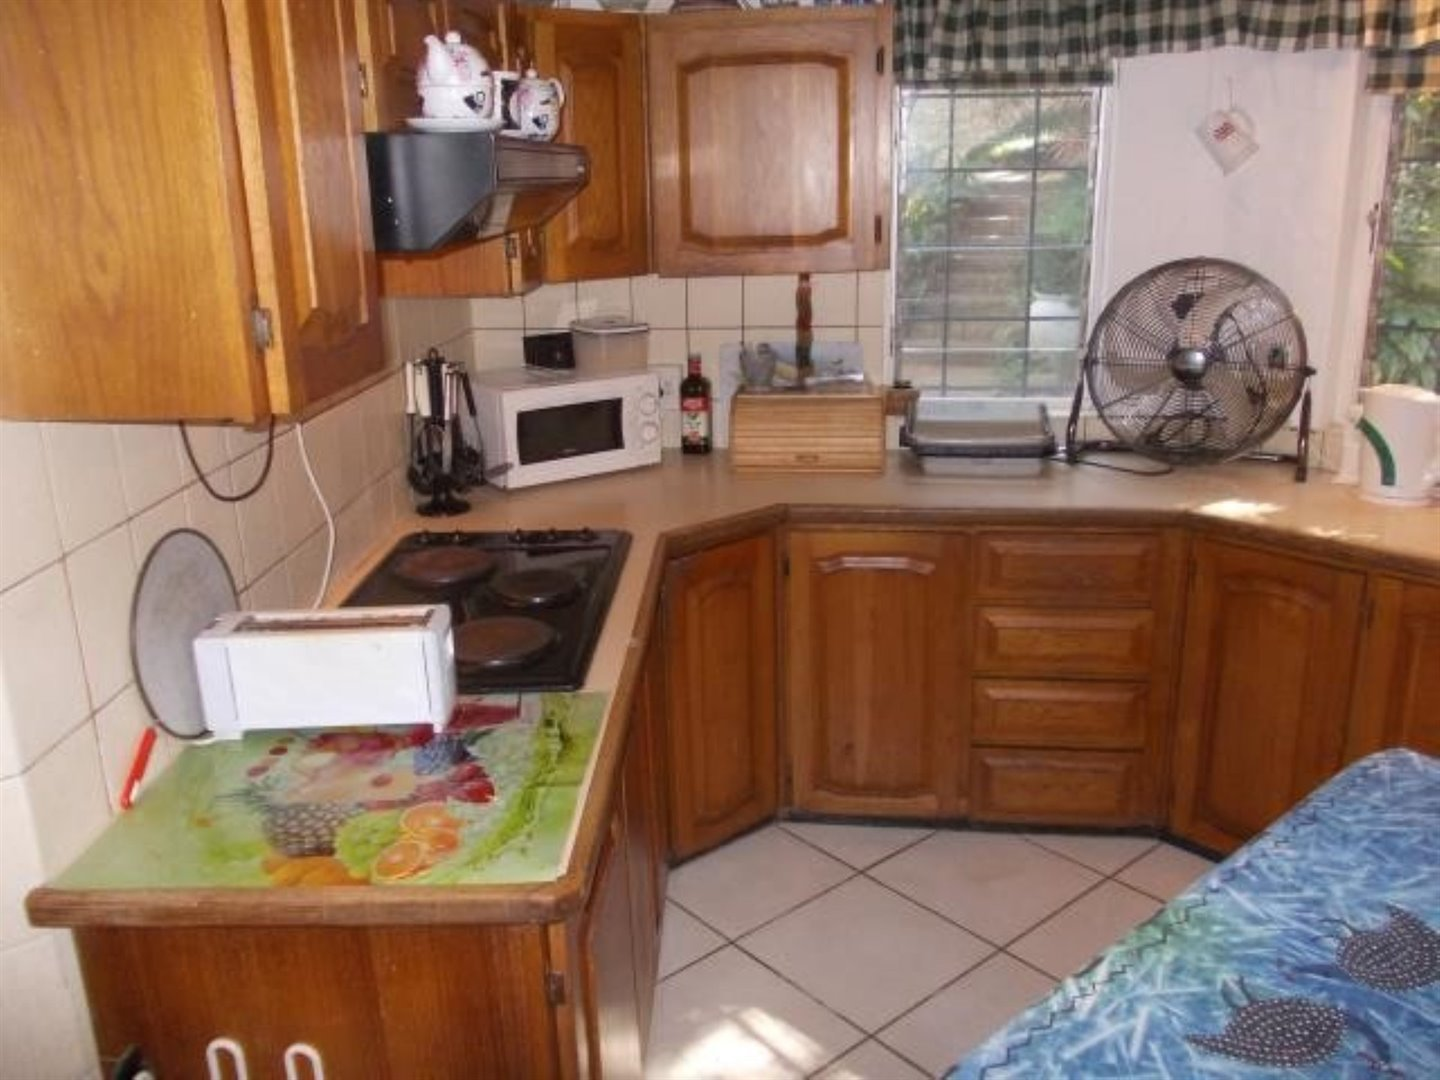 Clansthal property for sale. Ref No: 12736980. Picture no 5